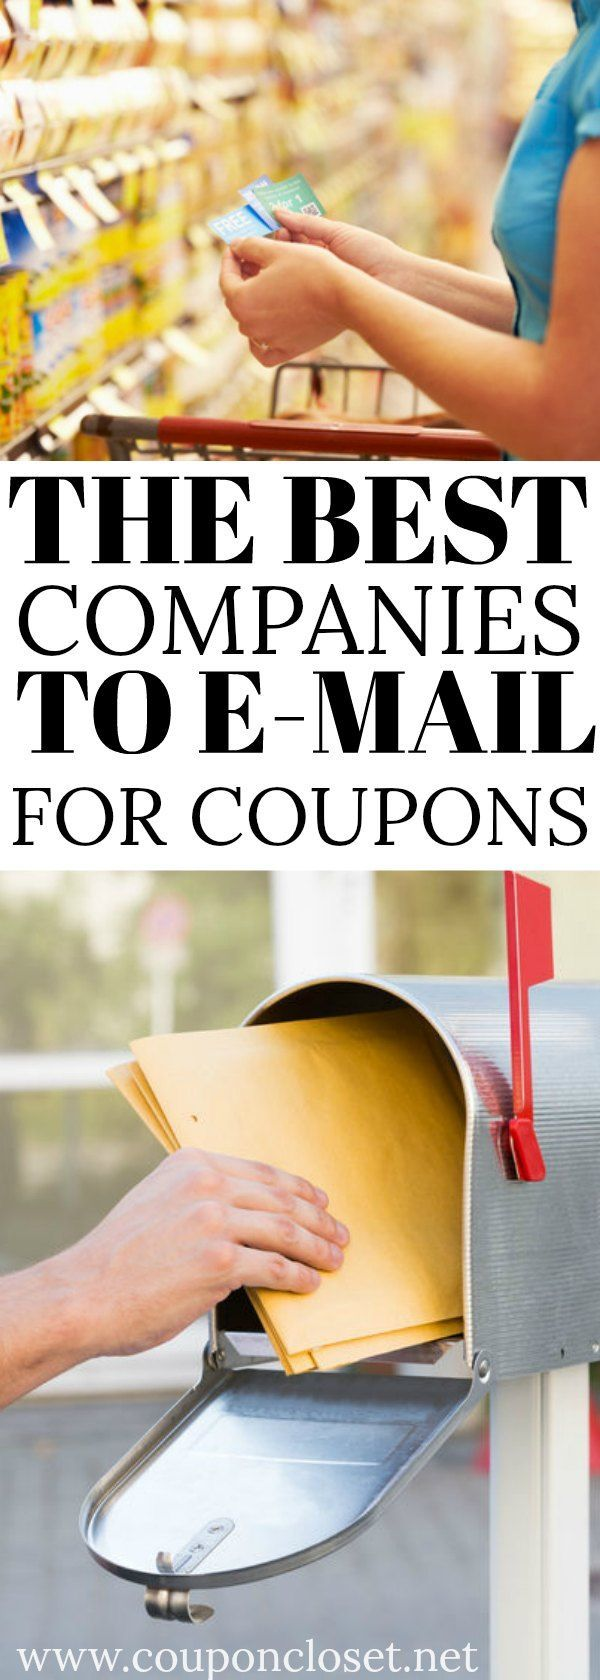 db7e1c23d4db927069671cb6f9cdebcb - How To Get A Free Check In The Mail